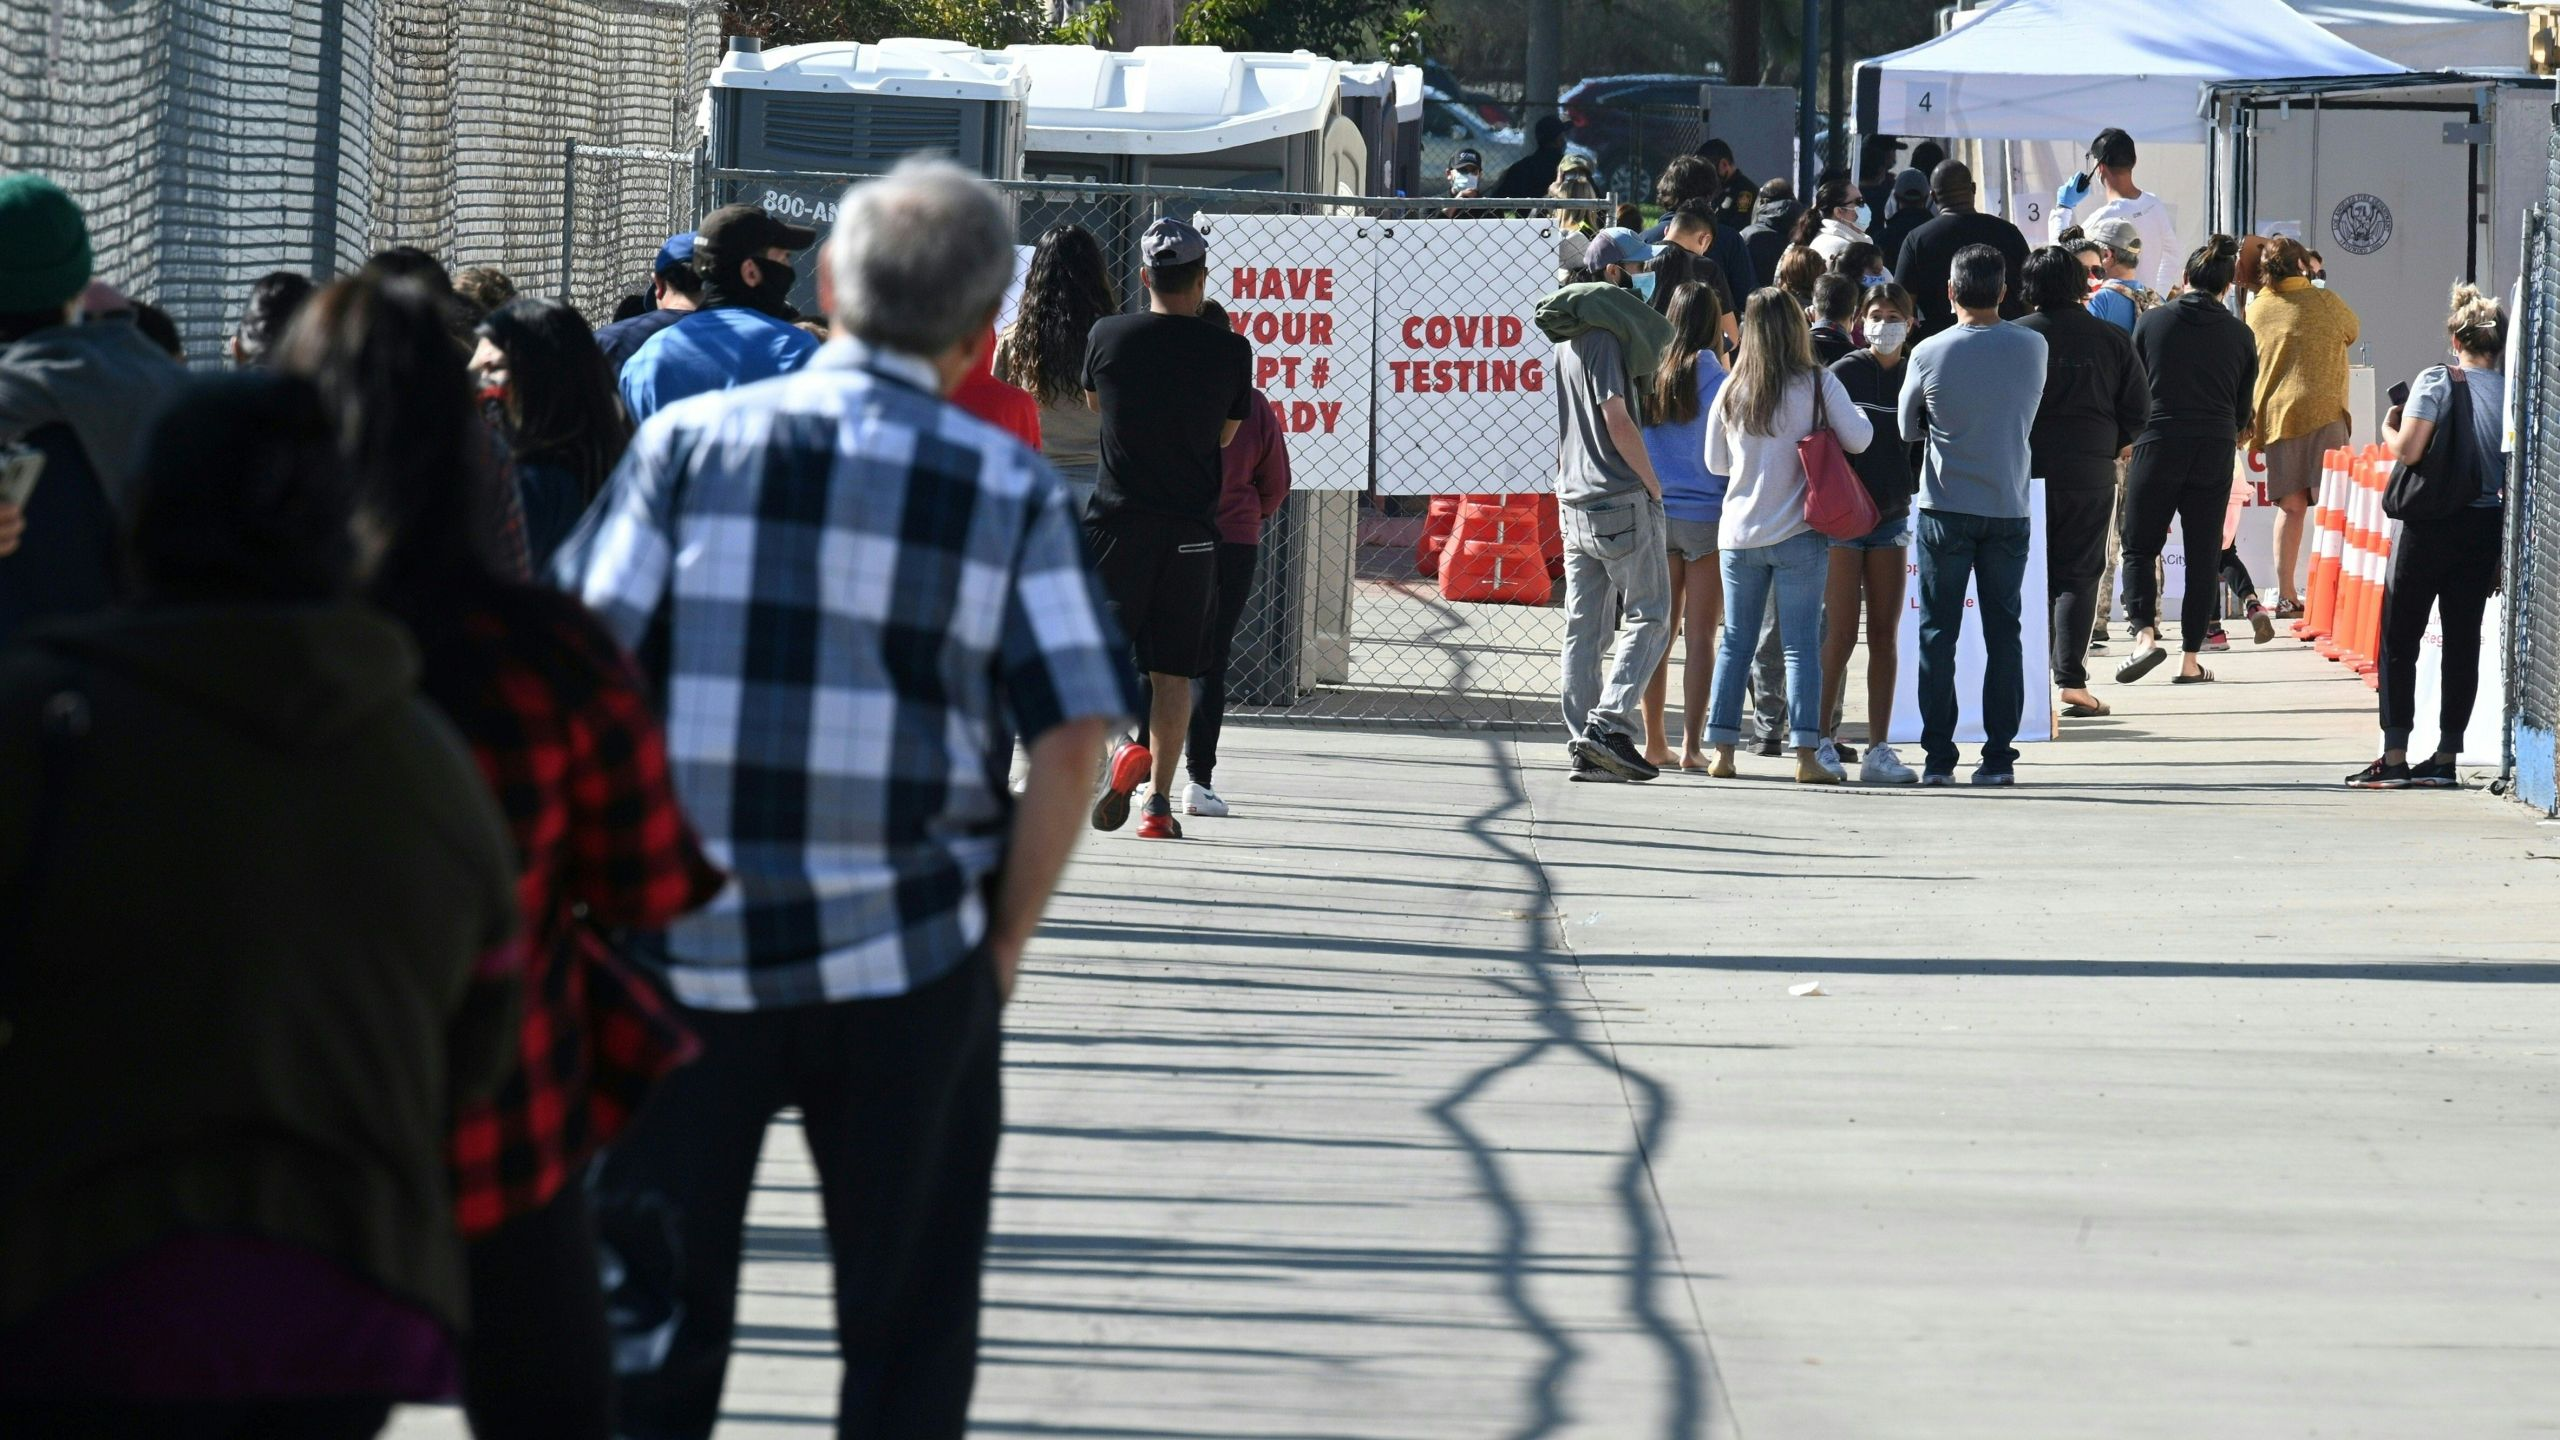 People wait in long lines for coronavius tests at a walk-up coronavirus testing site, Nov. 24, 2020, in San Fernando. (ROBYN BECK/AFP via Getty Images)